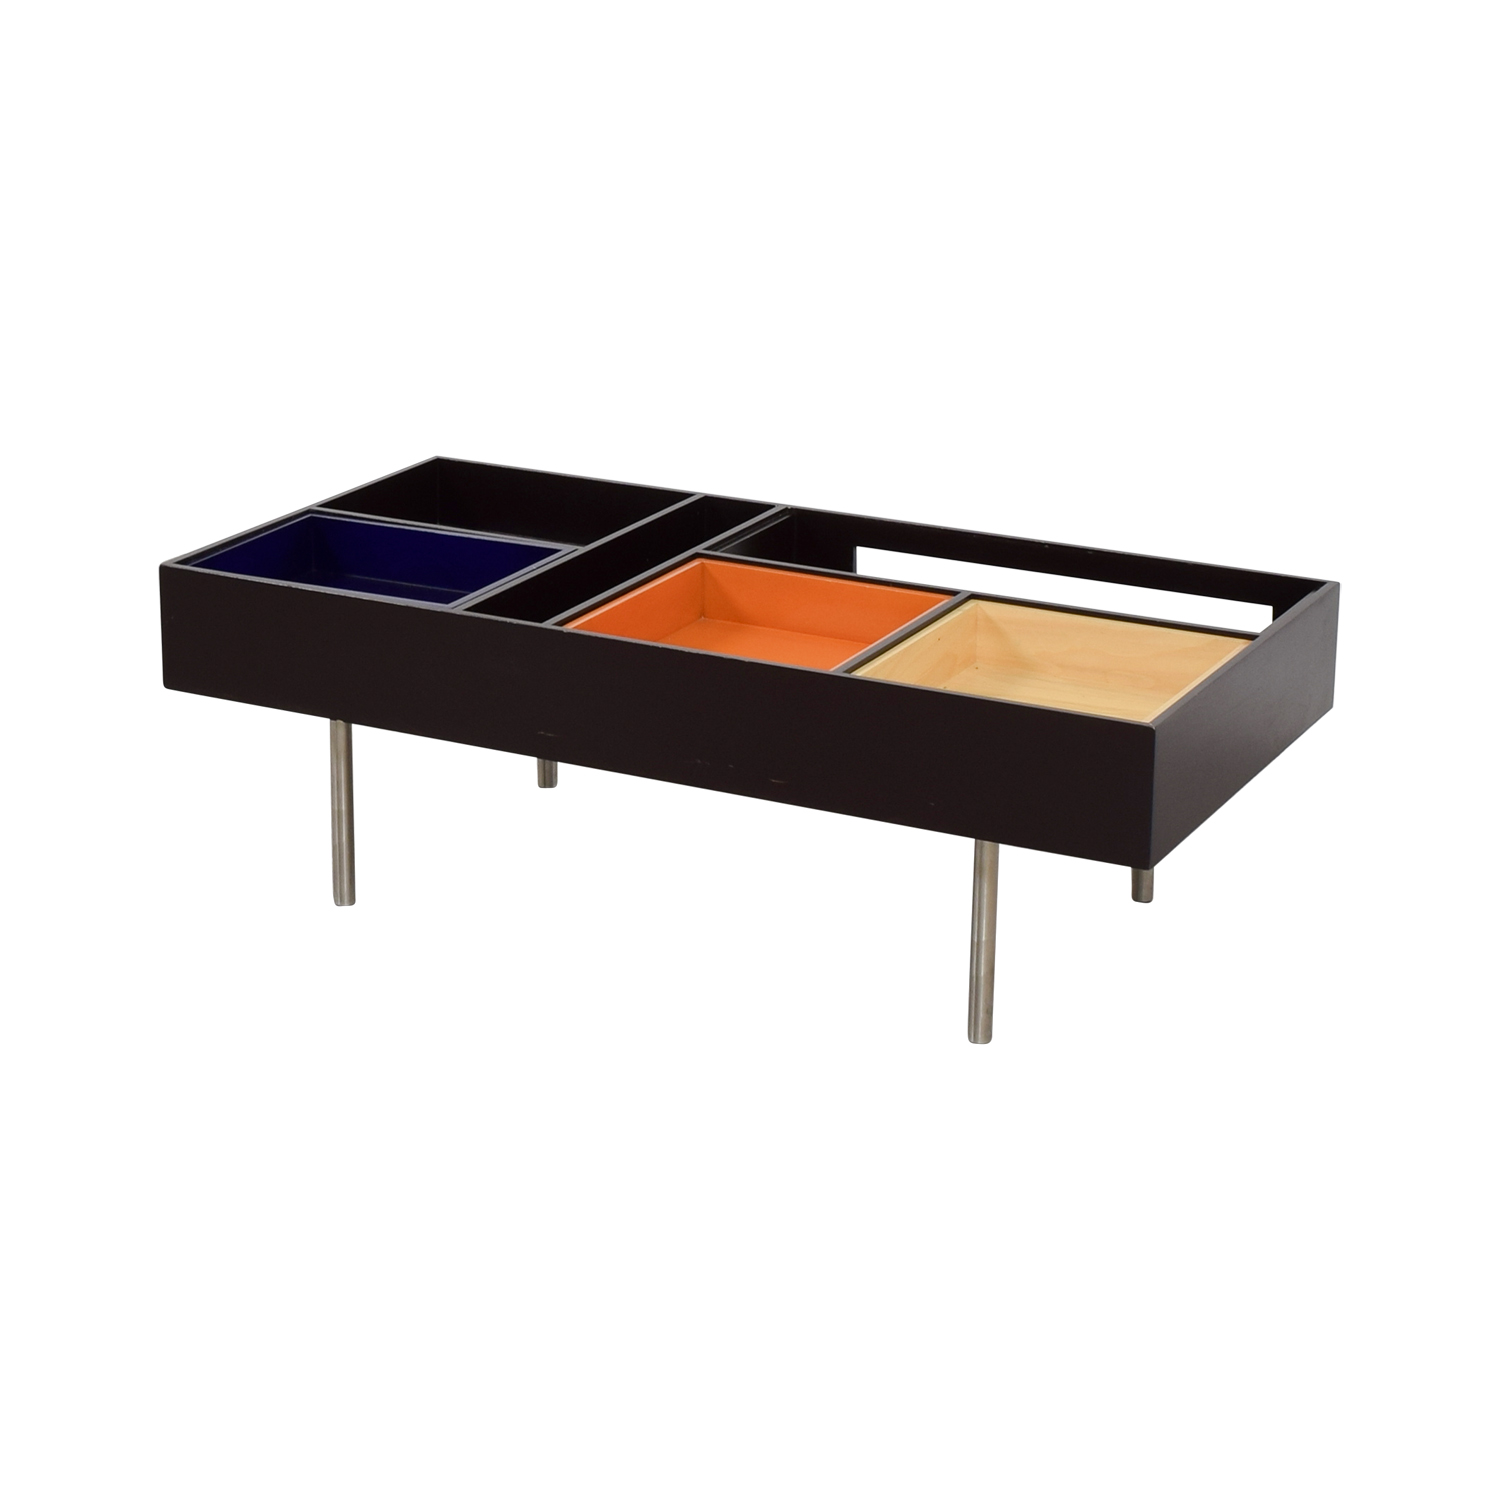 74 Off Metropolitan Design Center Metropolitan Design Center Multi Colored Coffee Table Tables